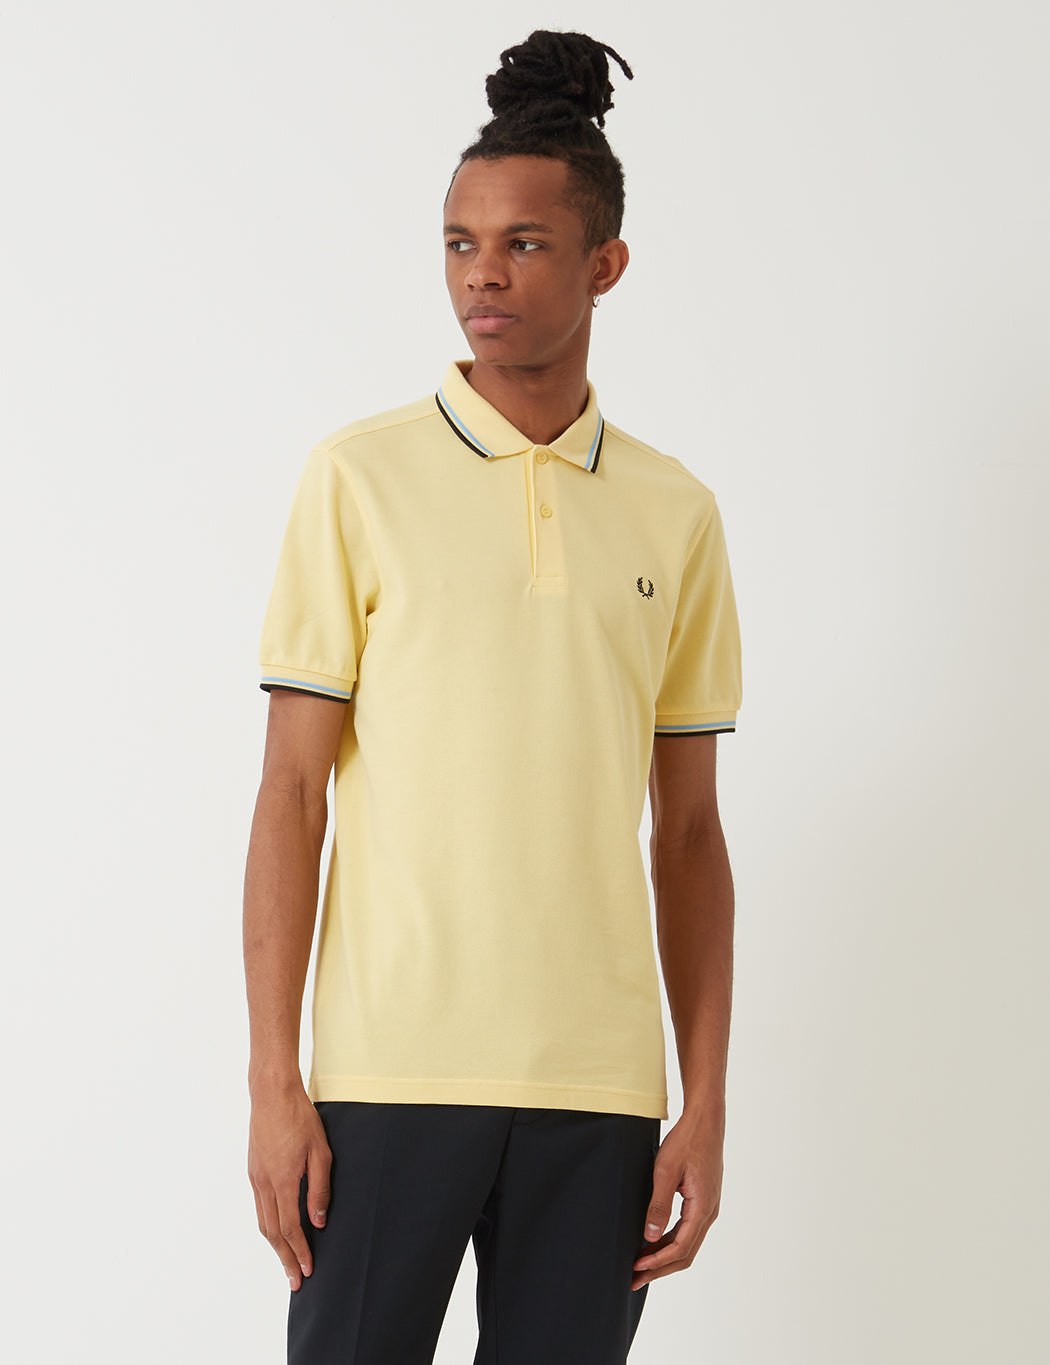 c9221cdb2 Fred Perry Twin Tipped Polo Shirt - Soft Yellow Summer Blue Black ...